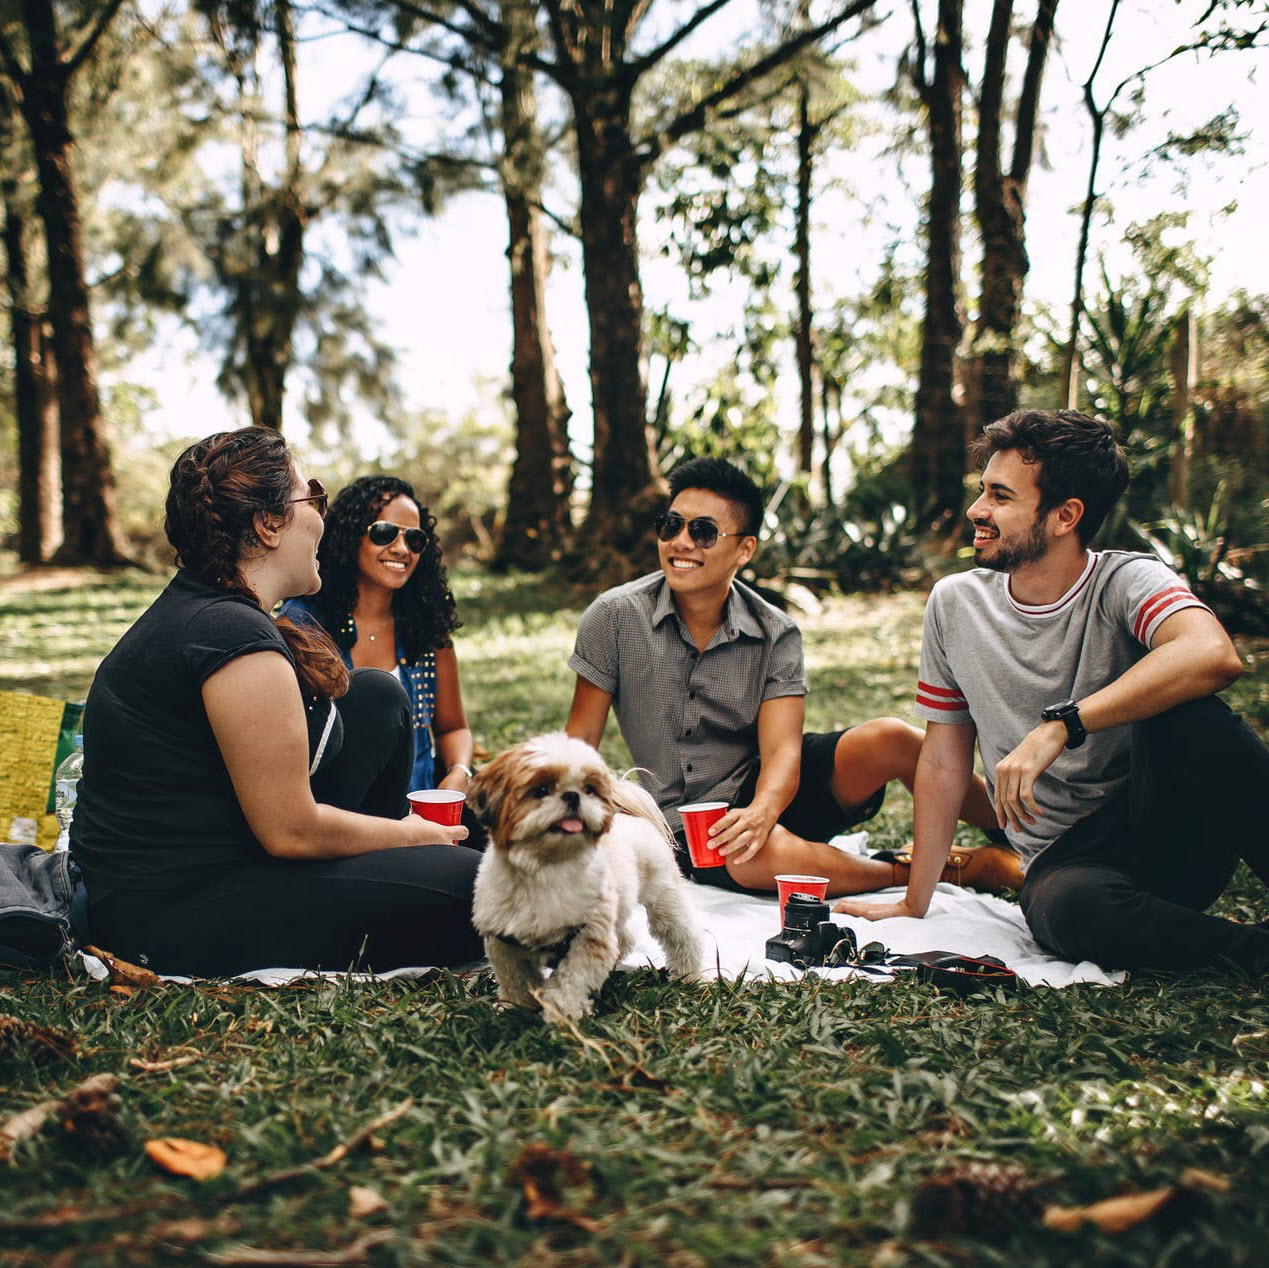 humans-out-for-picnic-with-dog